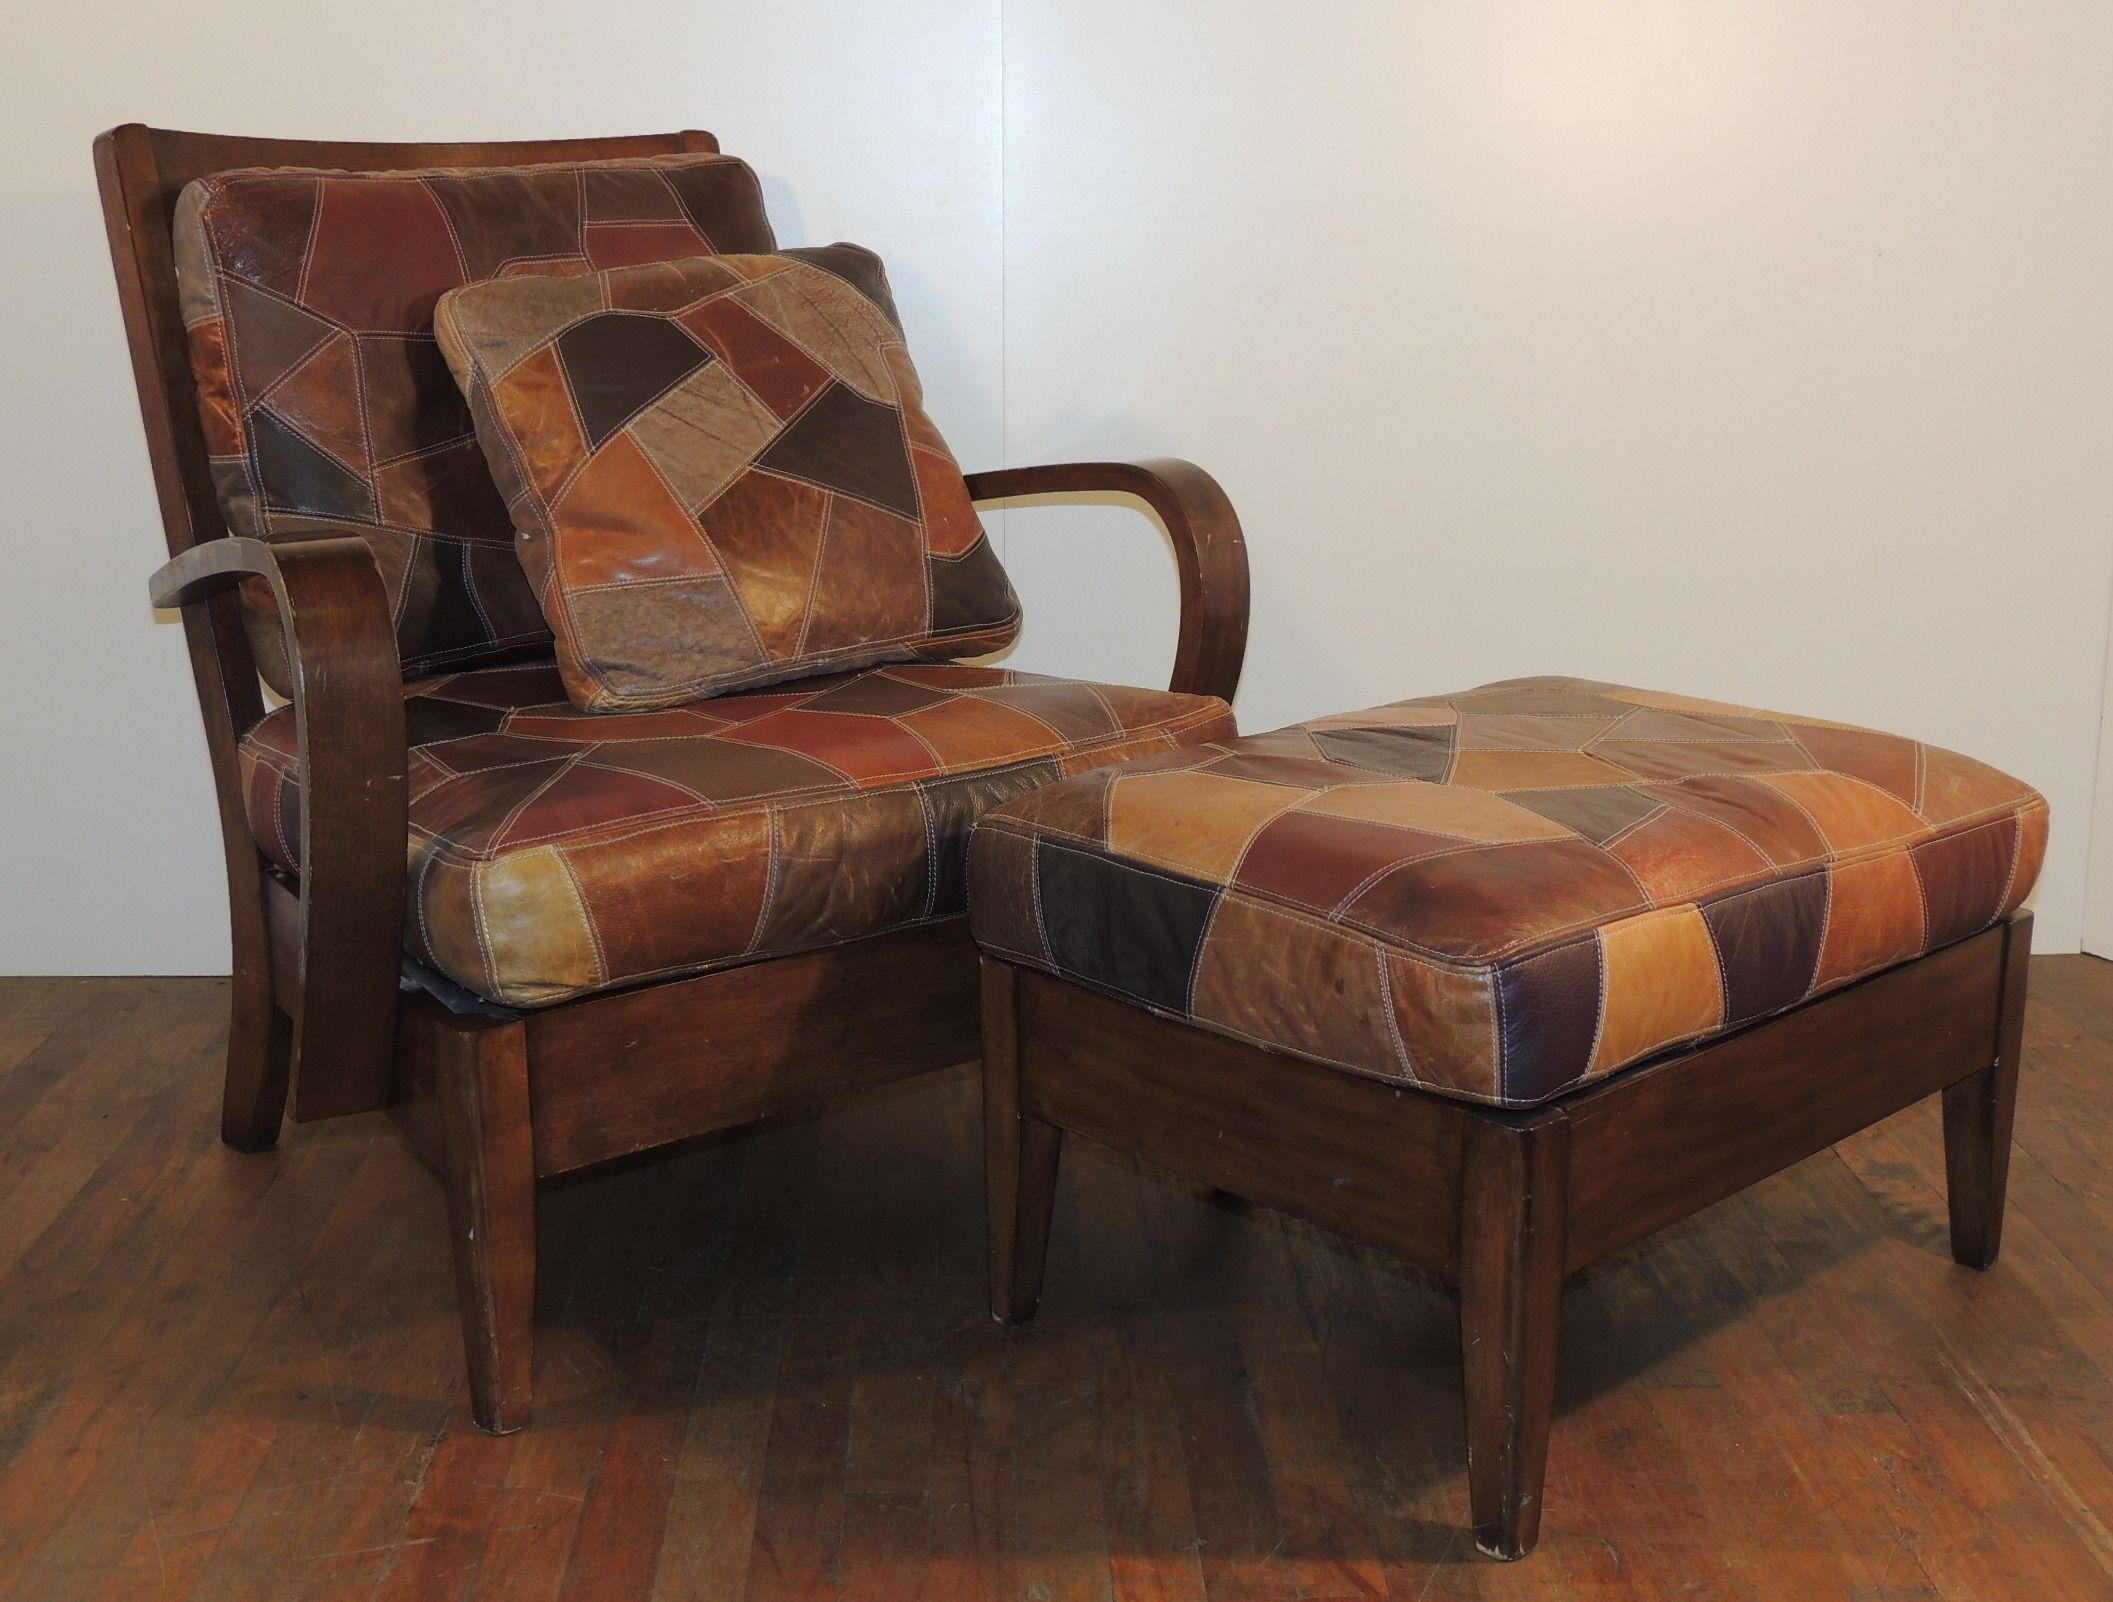 cushion covers for wooden sofa seats sweet sofas las vegas chair with patchwork leather seat and back